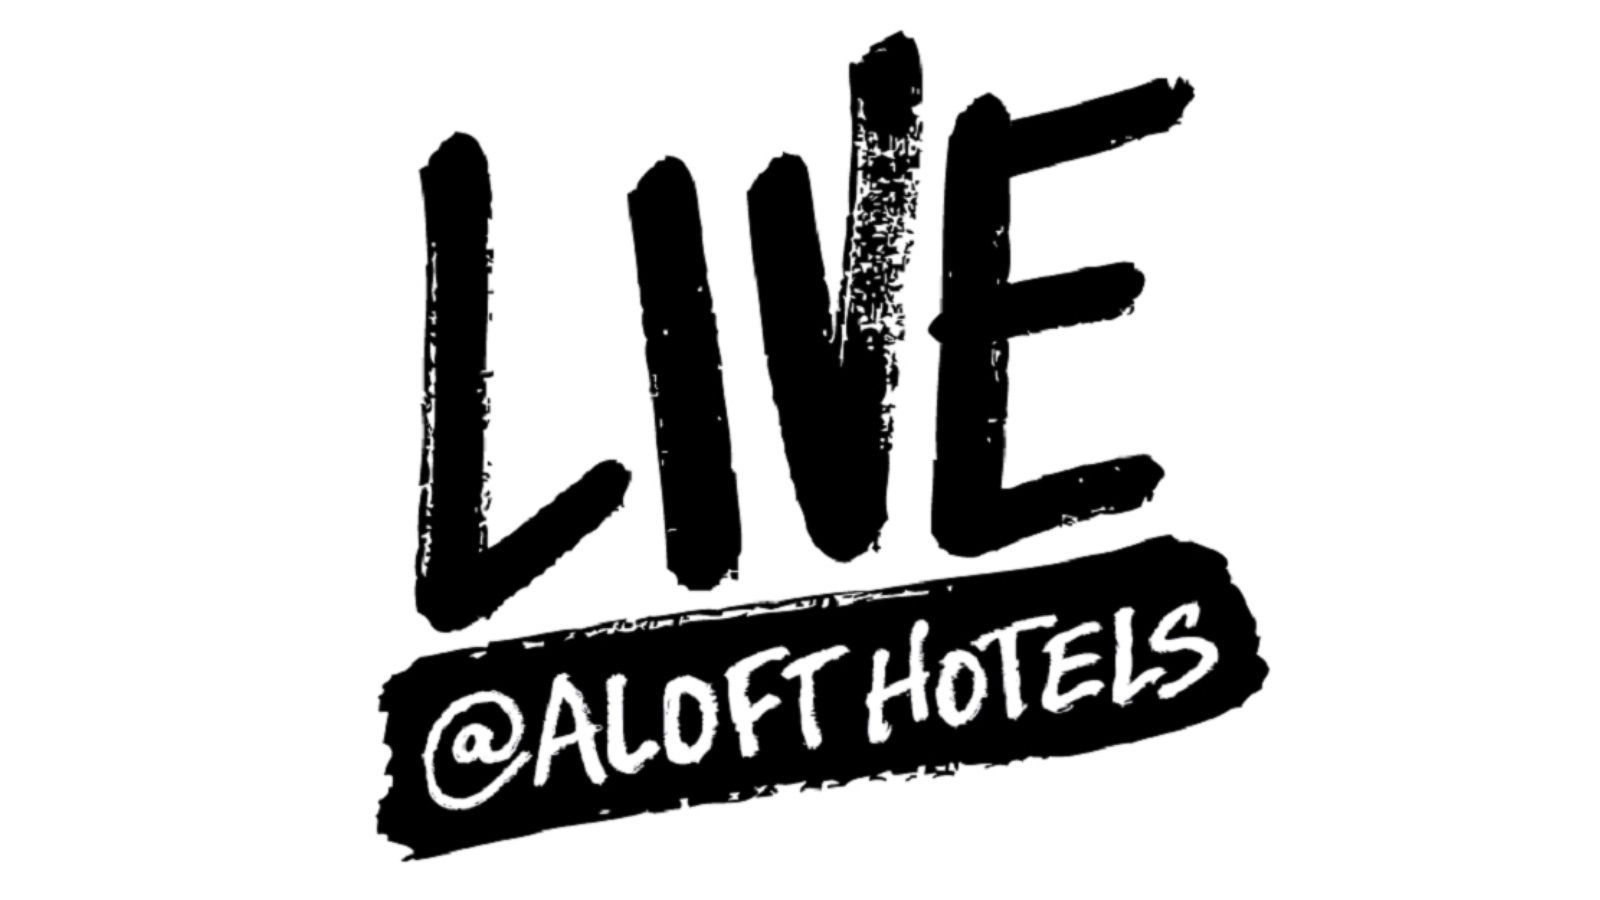 Boston Bars - Live At Aloft Hotels